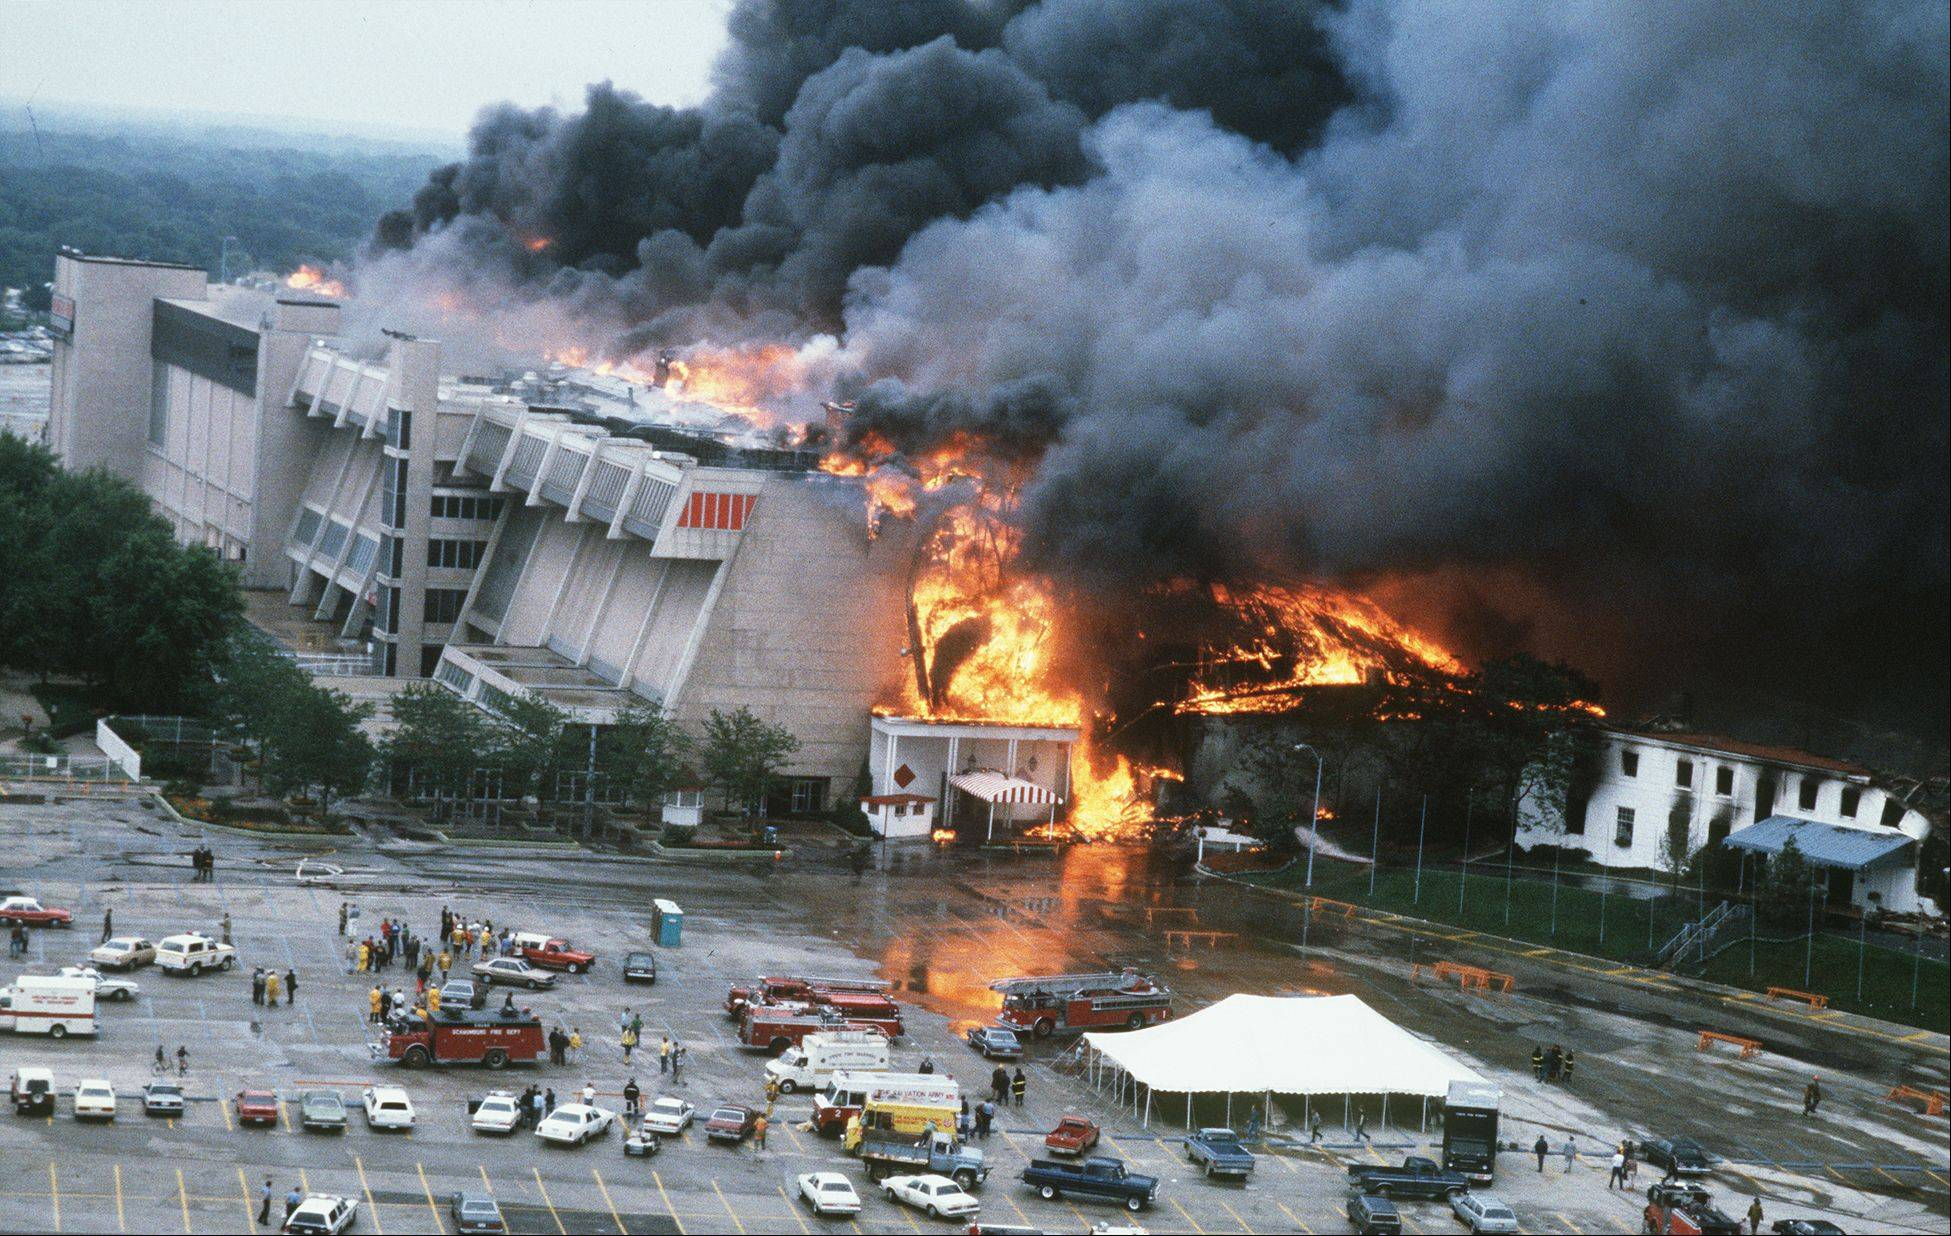 Flames engulf Arlington Park racetrack on July 31, 1985. Less than a month later the Arlington Million was held there, with spectators in temporary bleachers. The newly rebuilt grandstand fully opened in 1989.